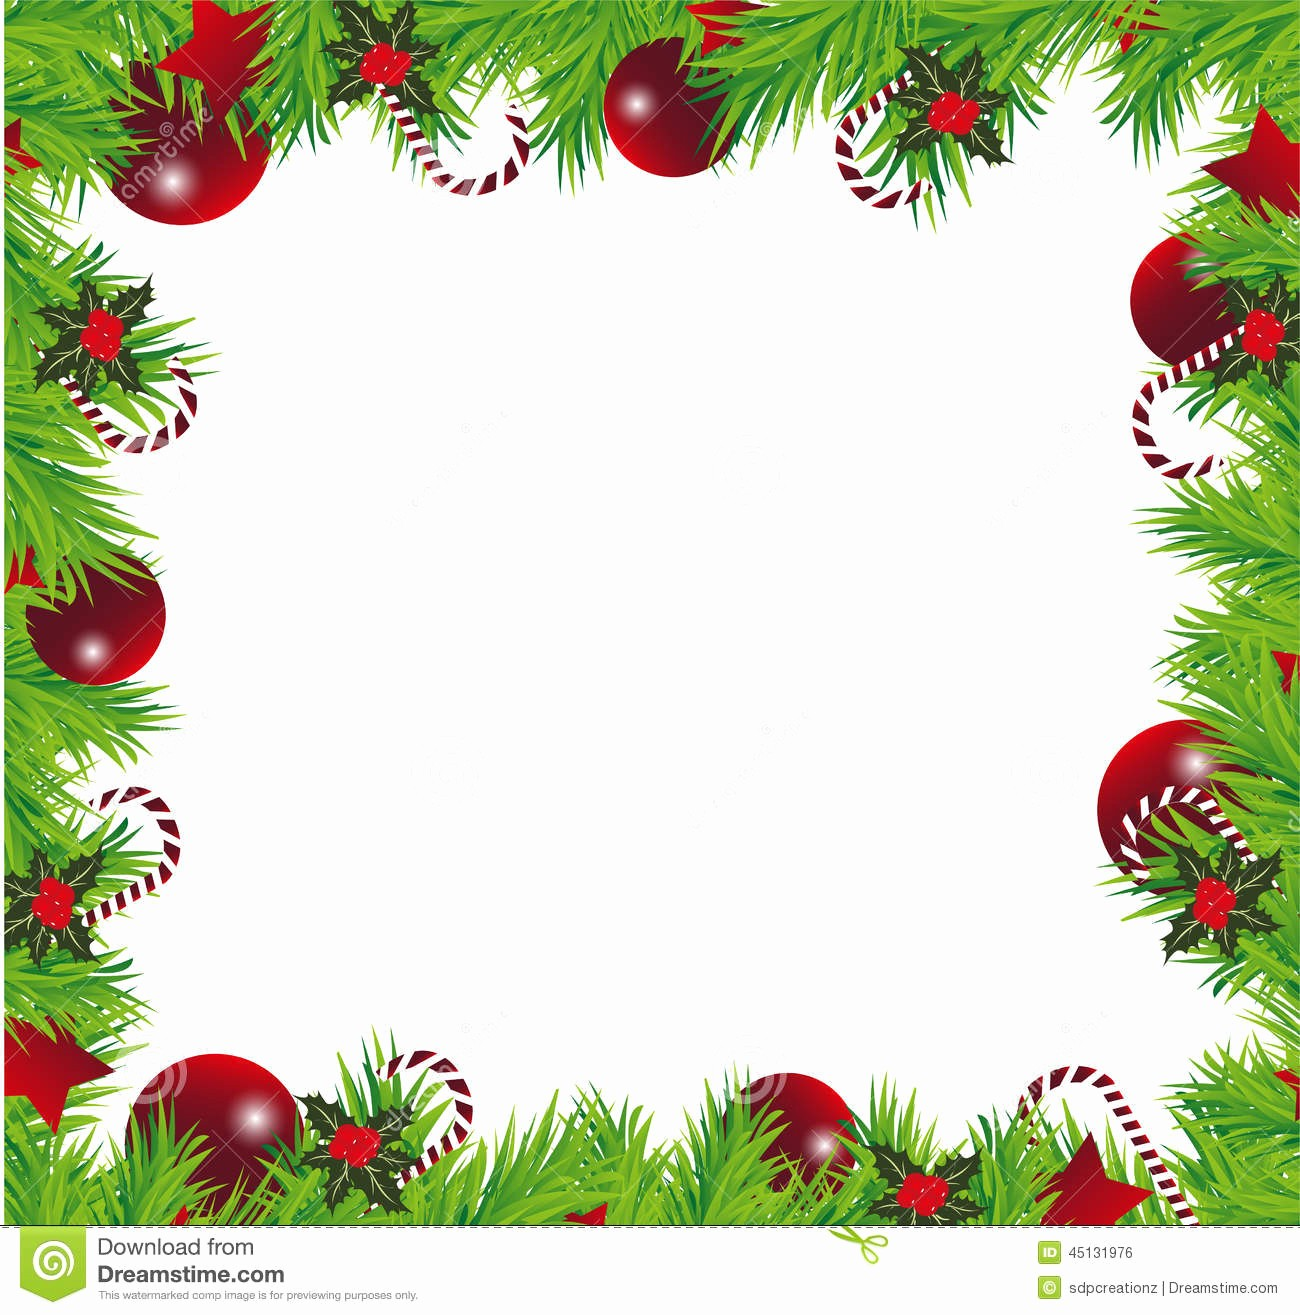 Christmas Background Images for Word Luxury Christmas Frame Stock Illustration Image